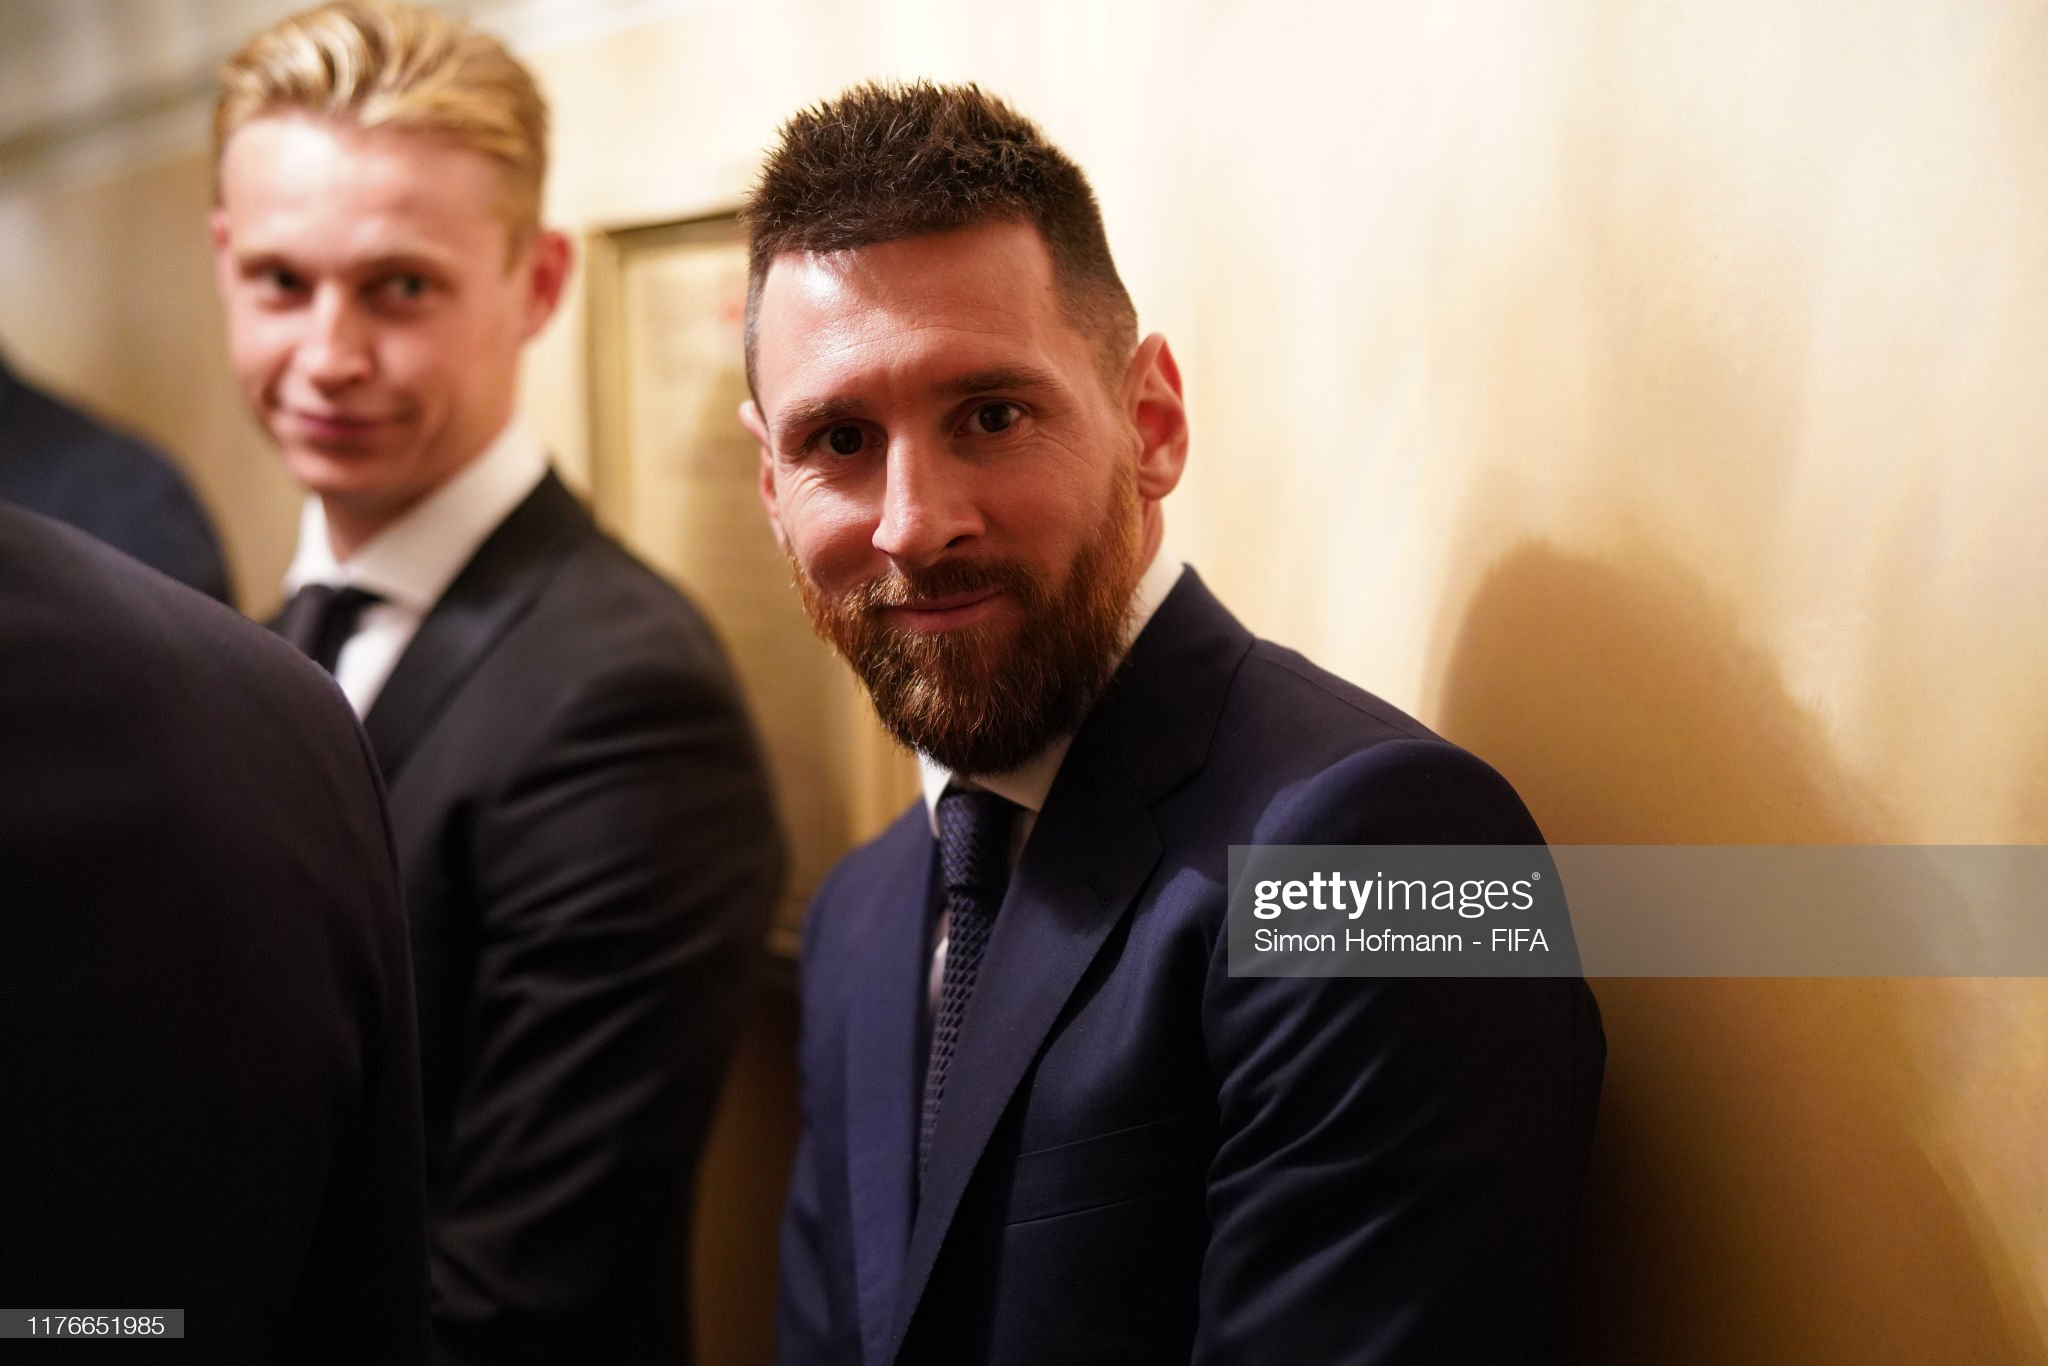 The Best FIFA Football Awards 2019 The-best-fifa-mens-player-award-and-the-fifa-fifpro-mens-world11-picture-id1176651985?s=2048x2048